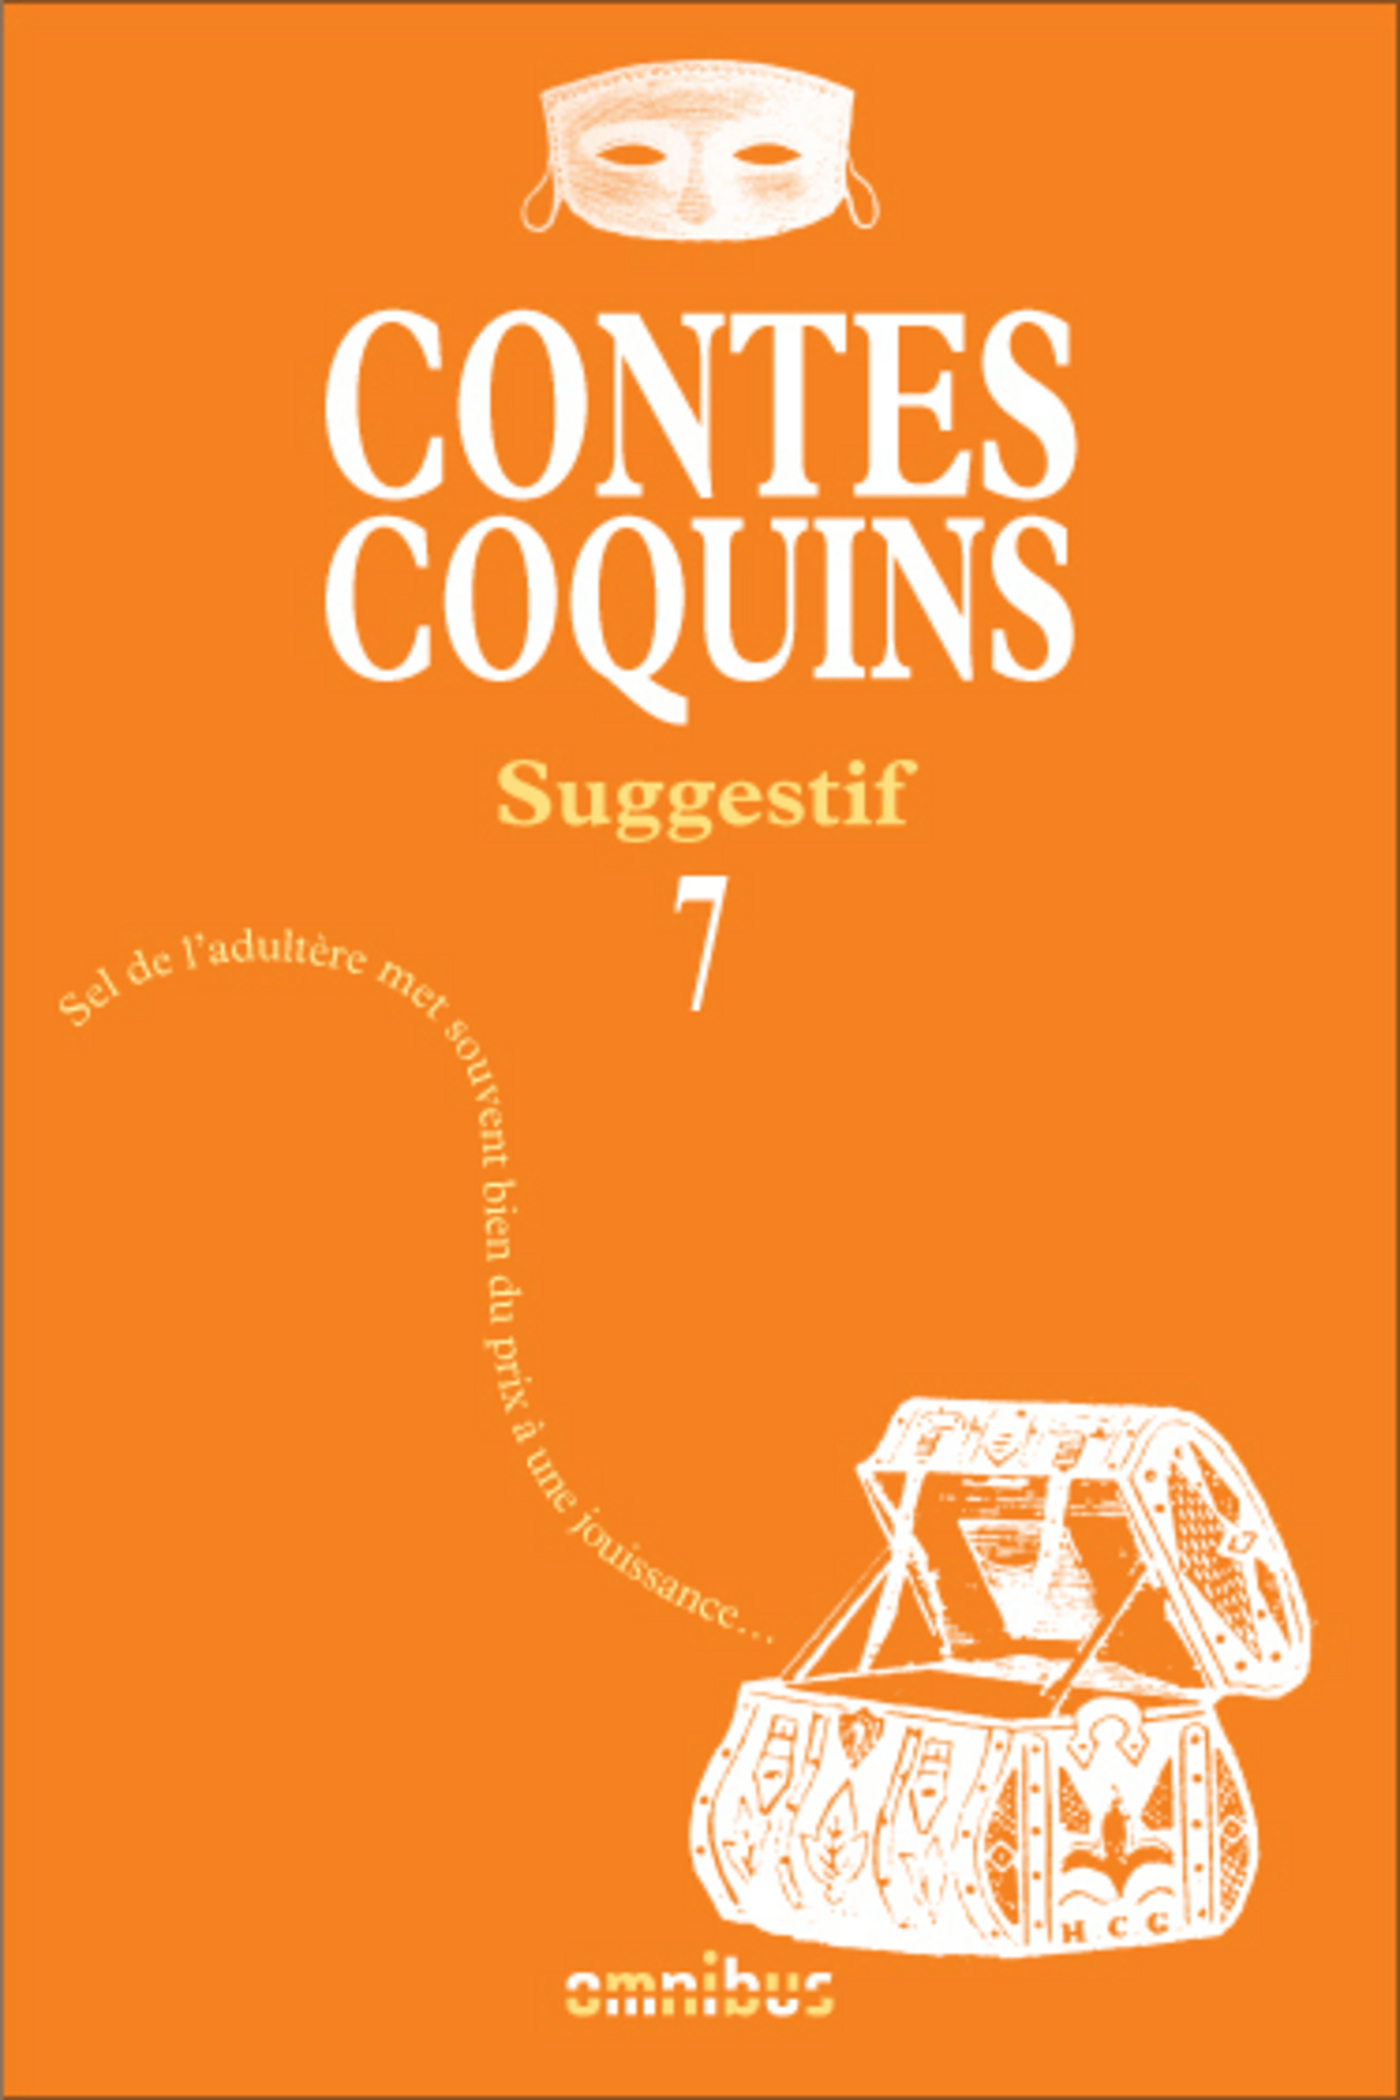 Contes coquins 7 - Suggestif